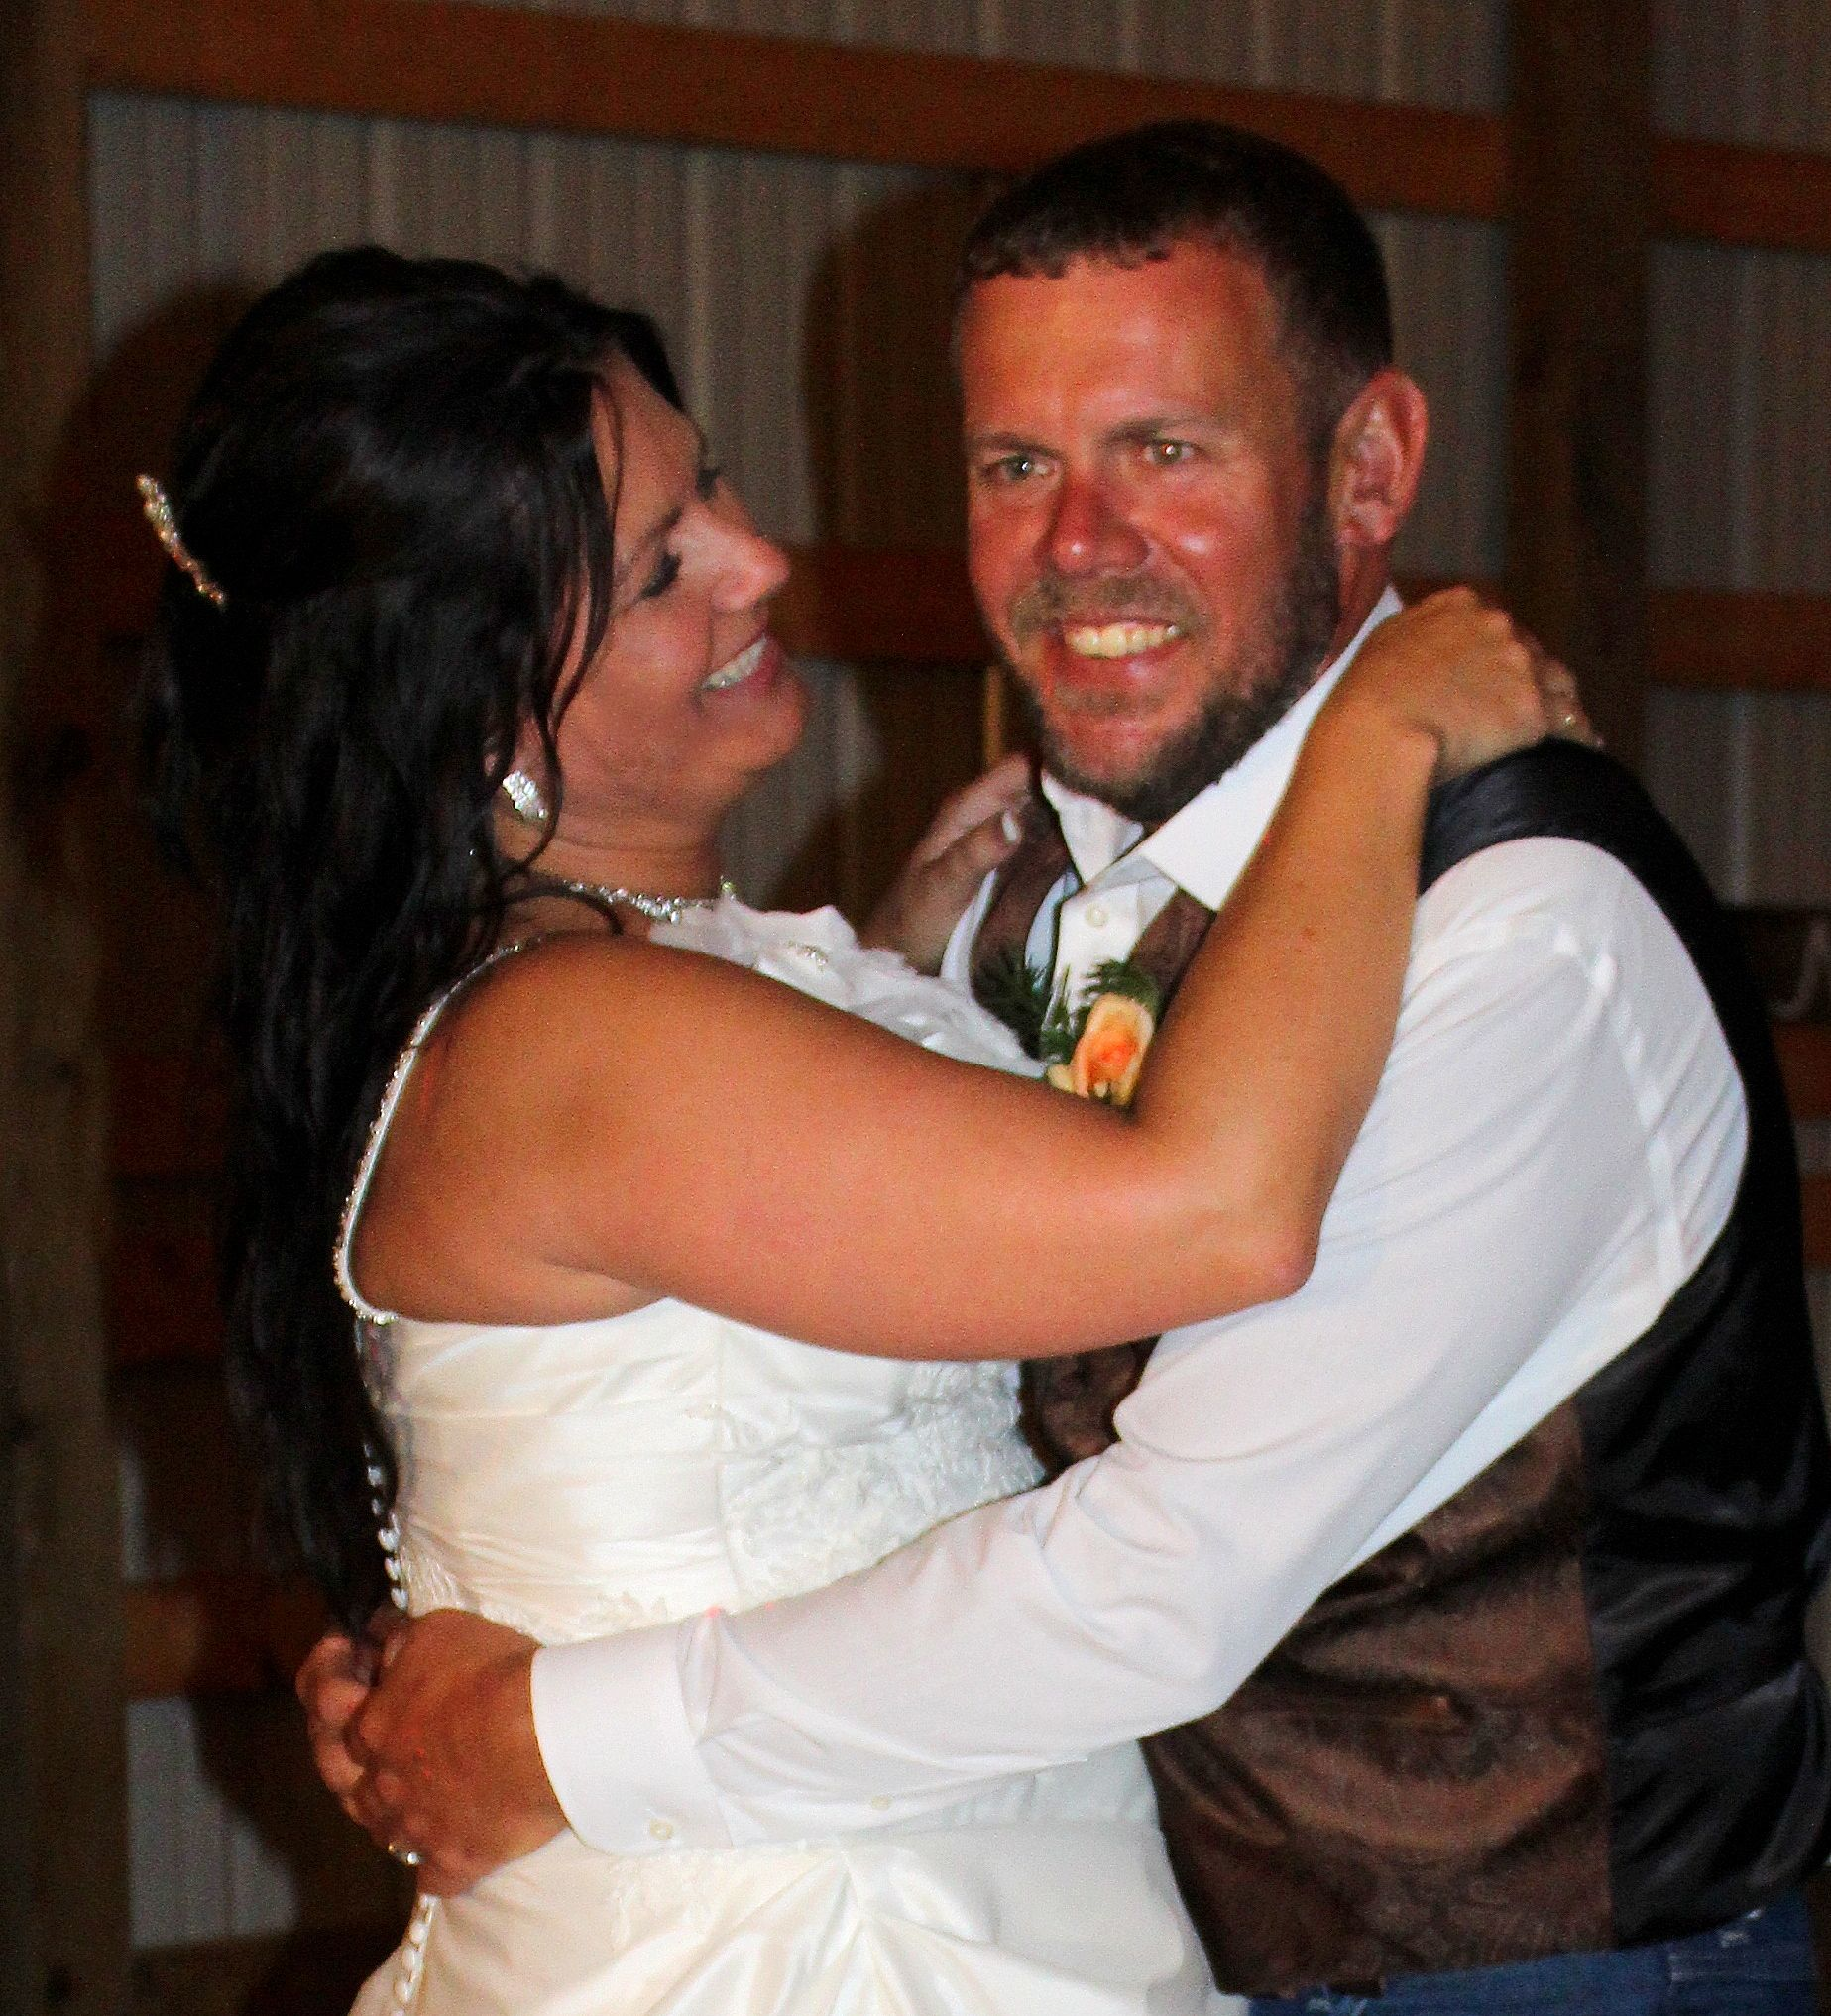 "Our first dance as husband and wife...""I Don't Dance"" Lee Brice"